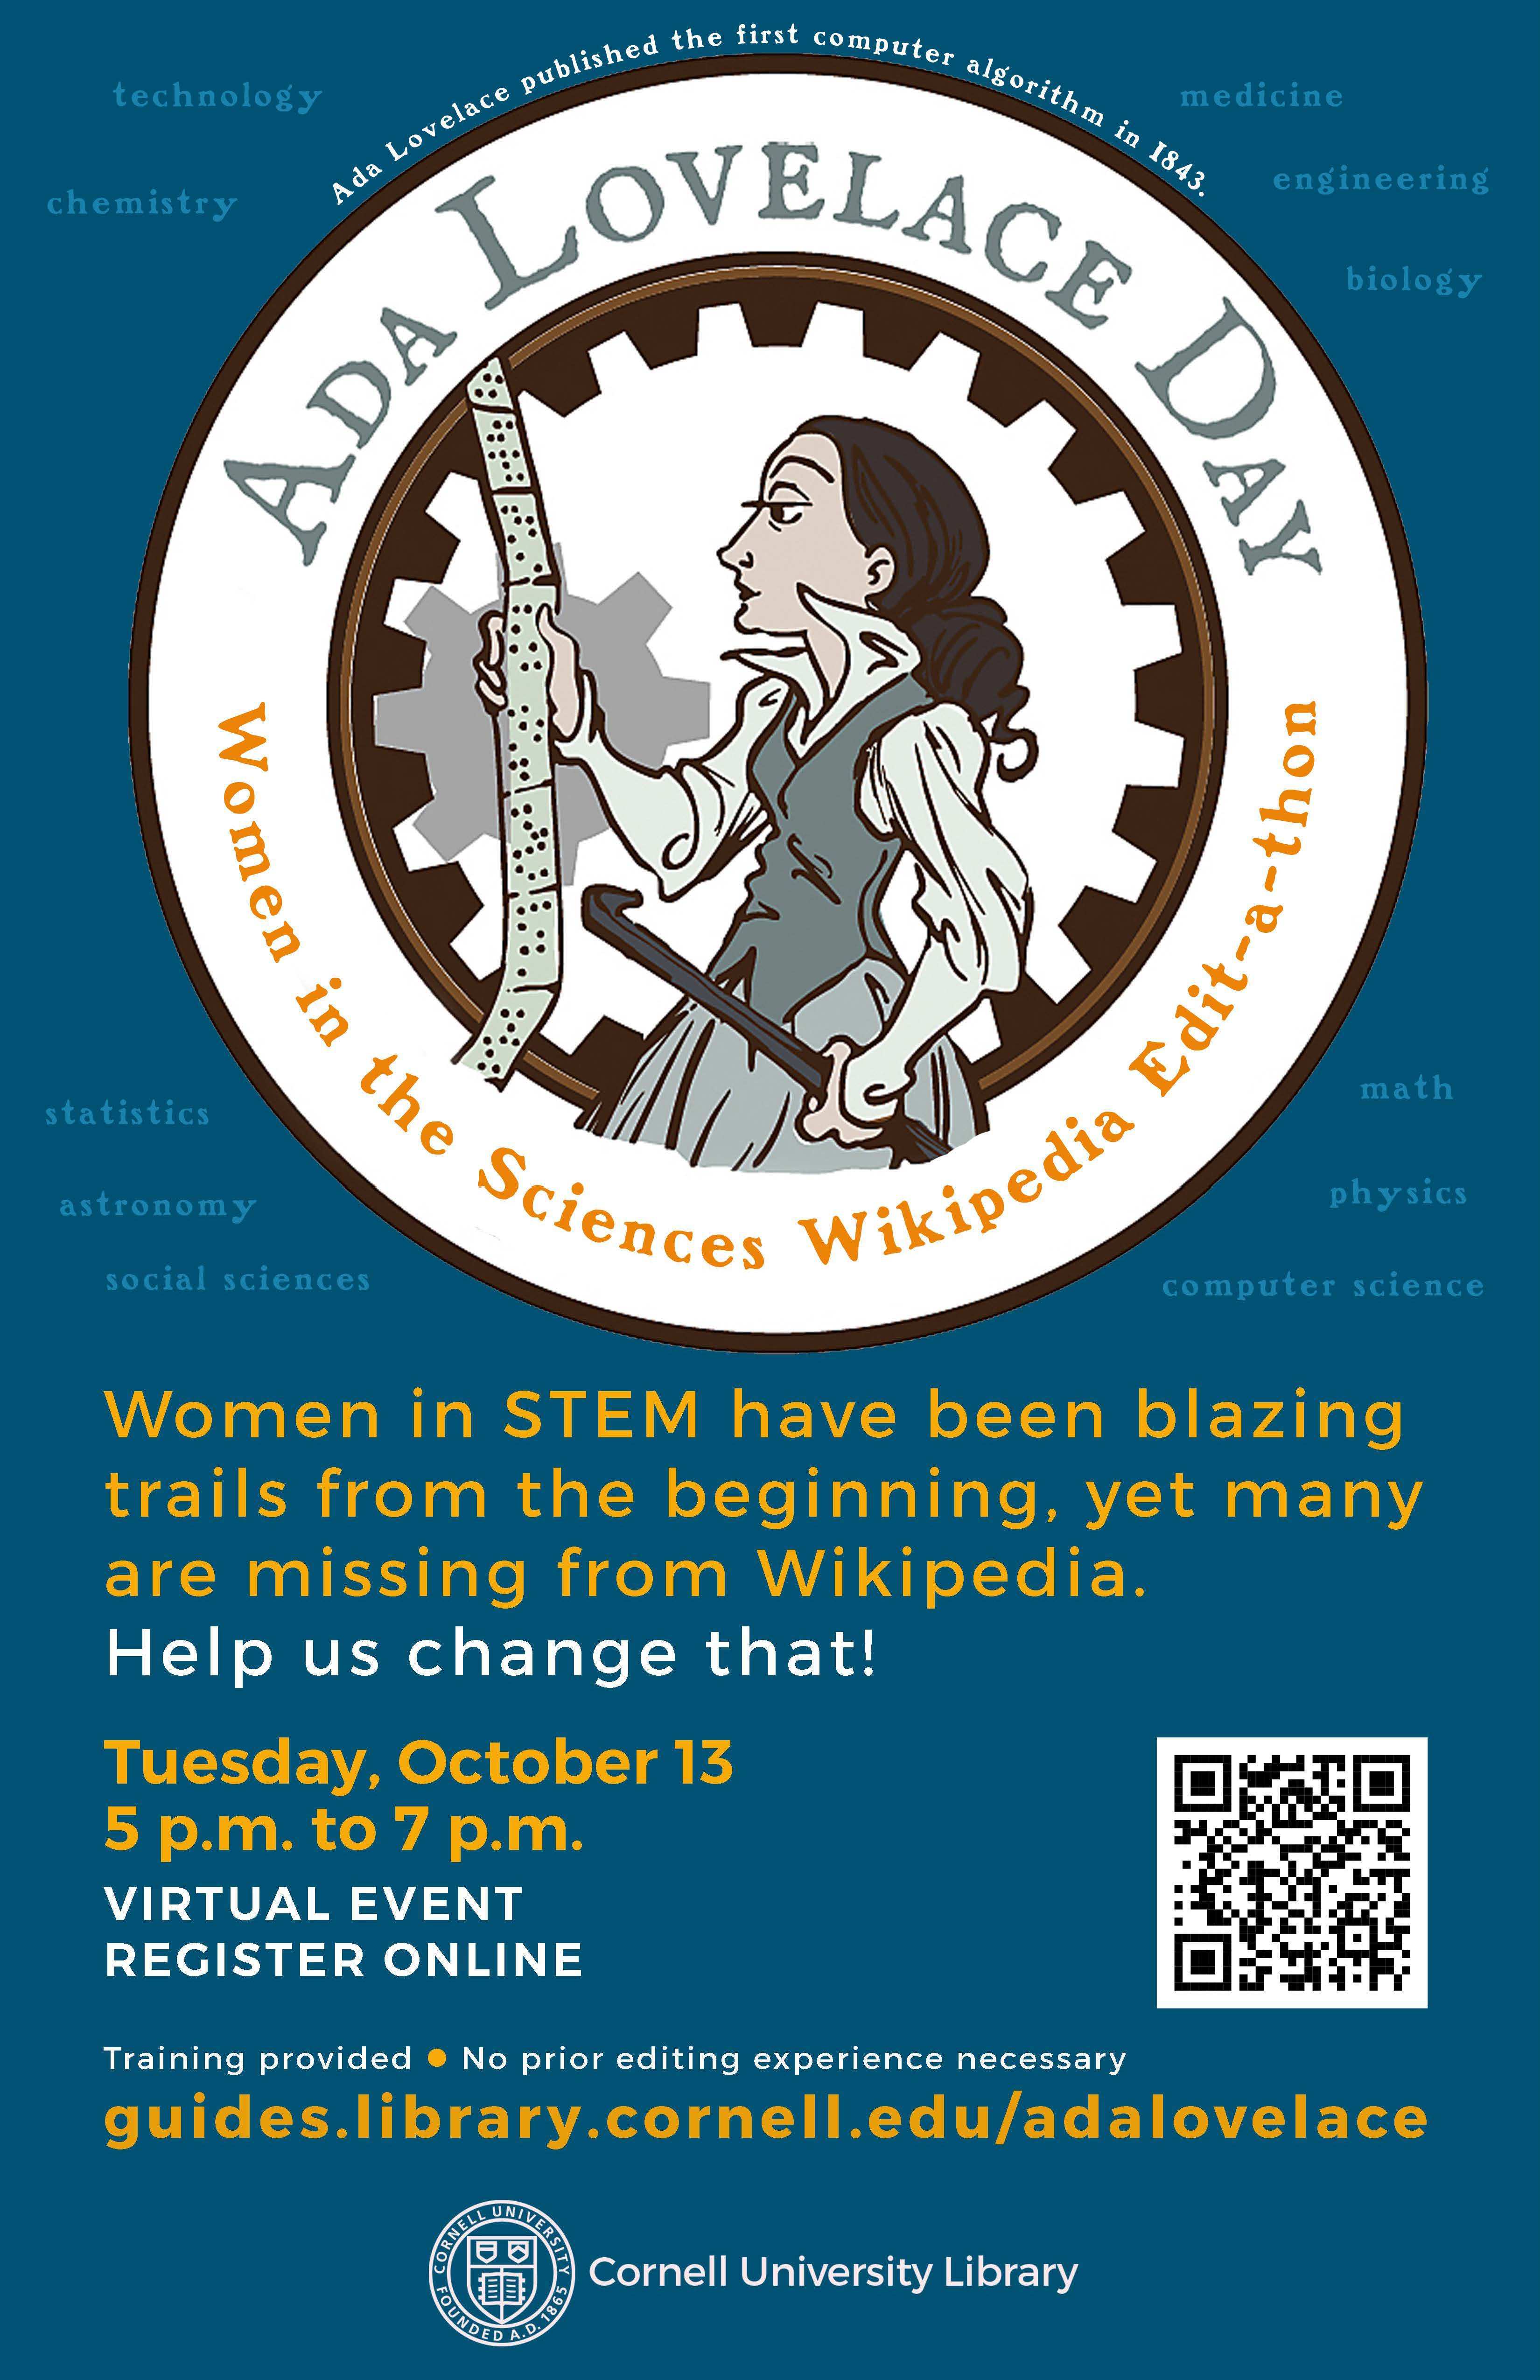 ada lovelace day event poster